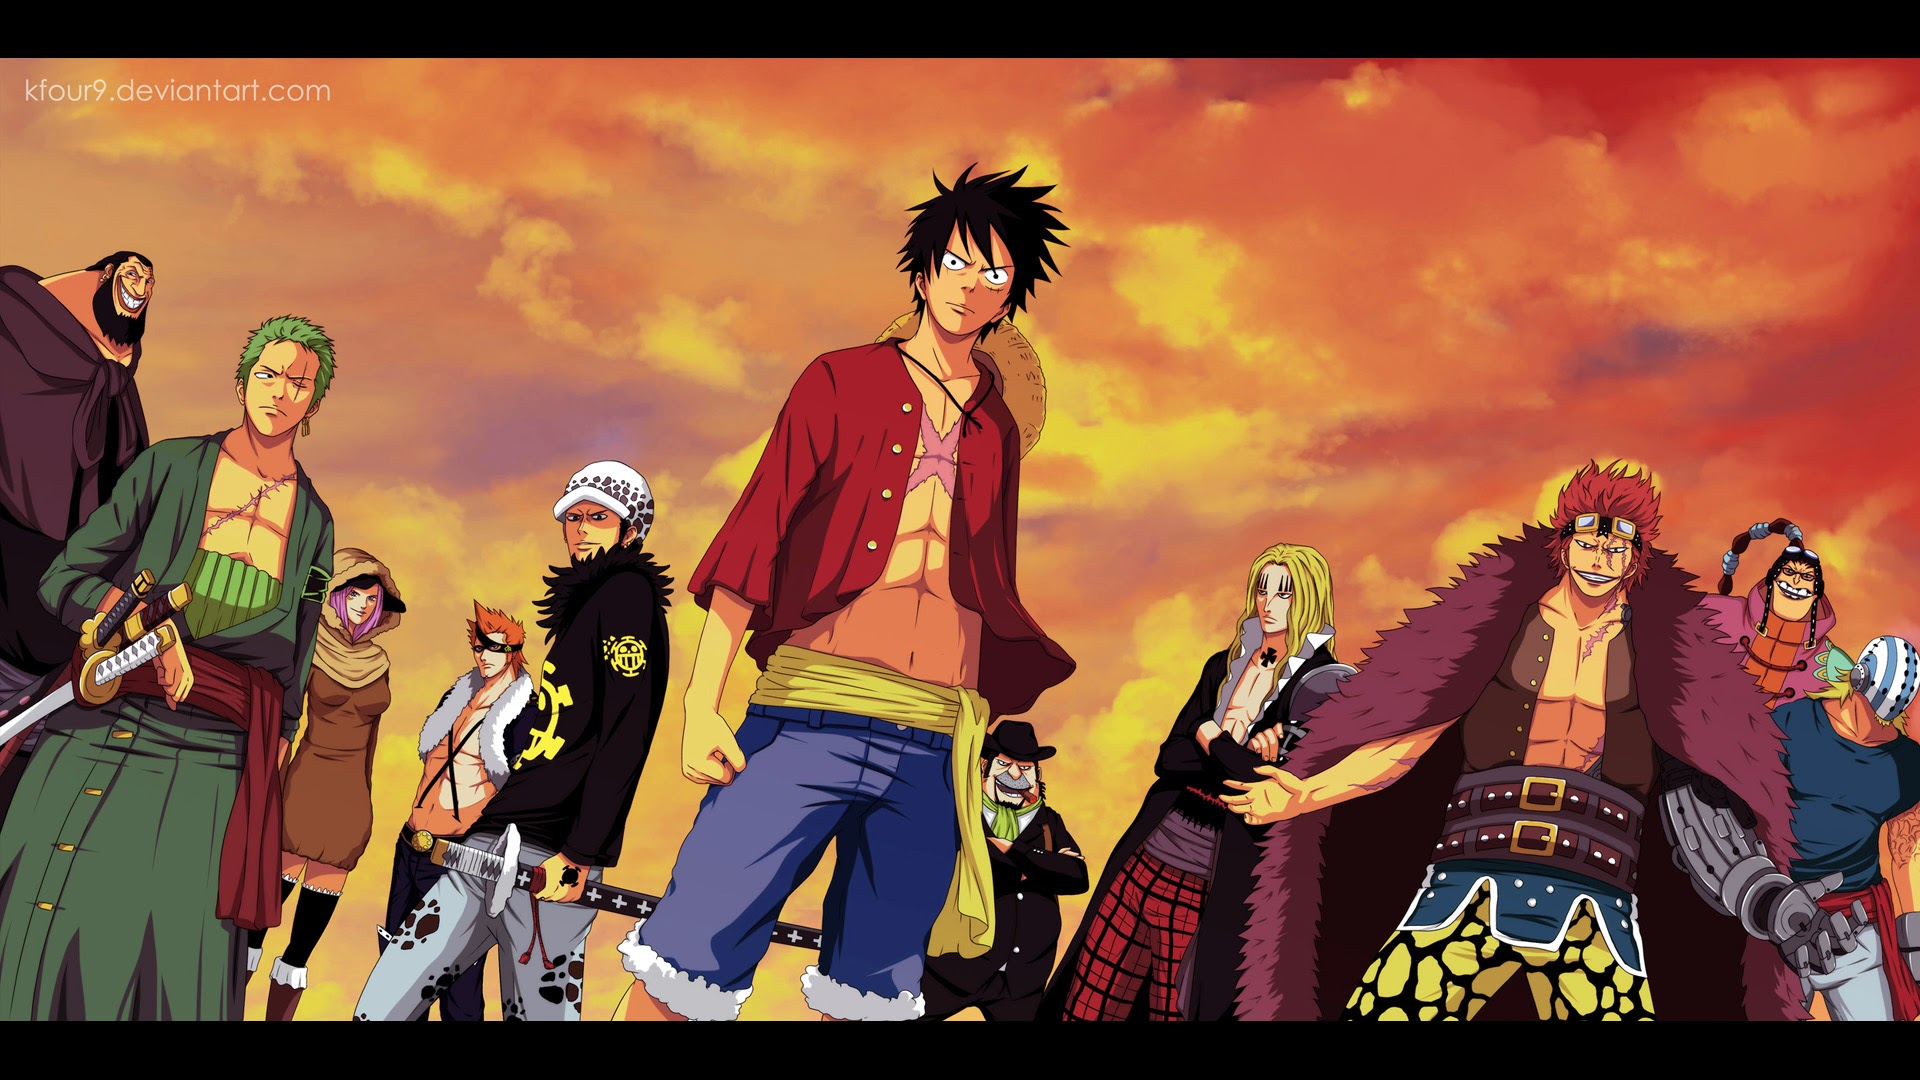 Download one piece wallpaper straw hat for desktop or mobile device. One Piece Wallpapers High Quality | Download Free